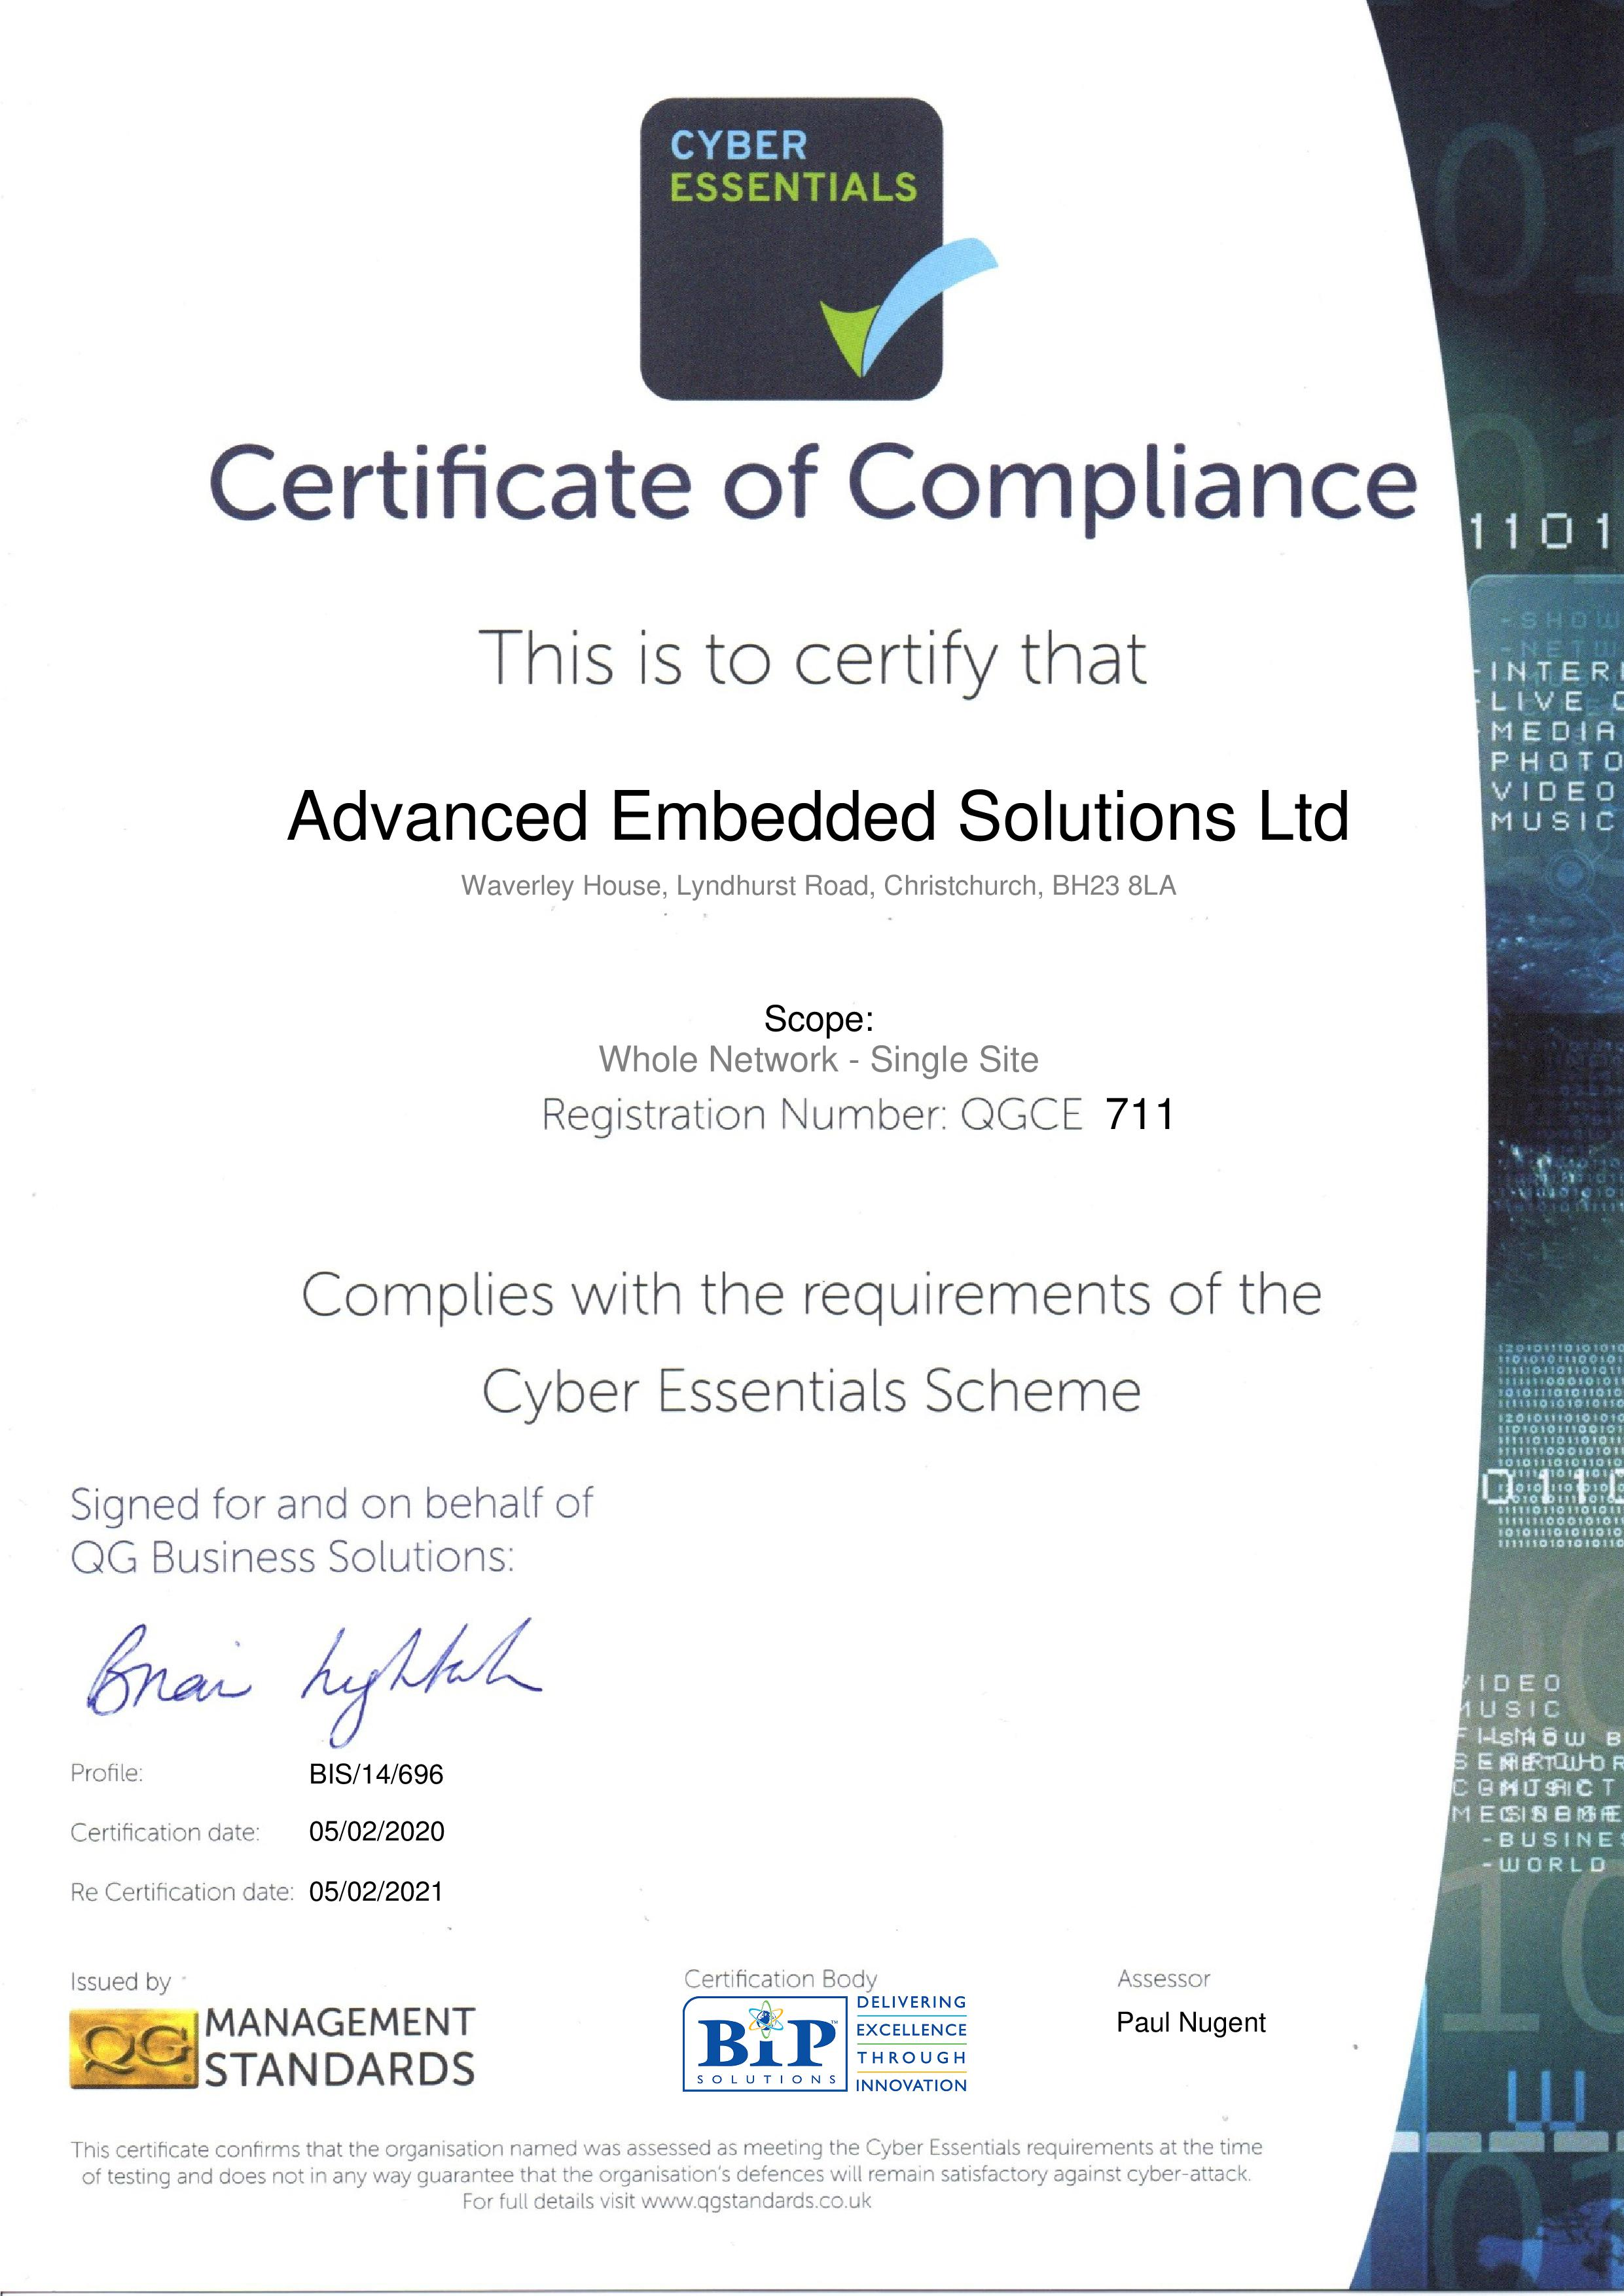 QGCE711 Advanced Embedded Solutions Ltd